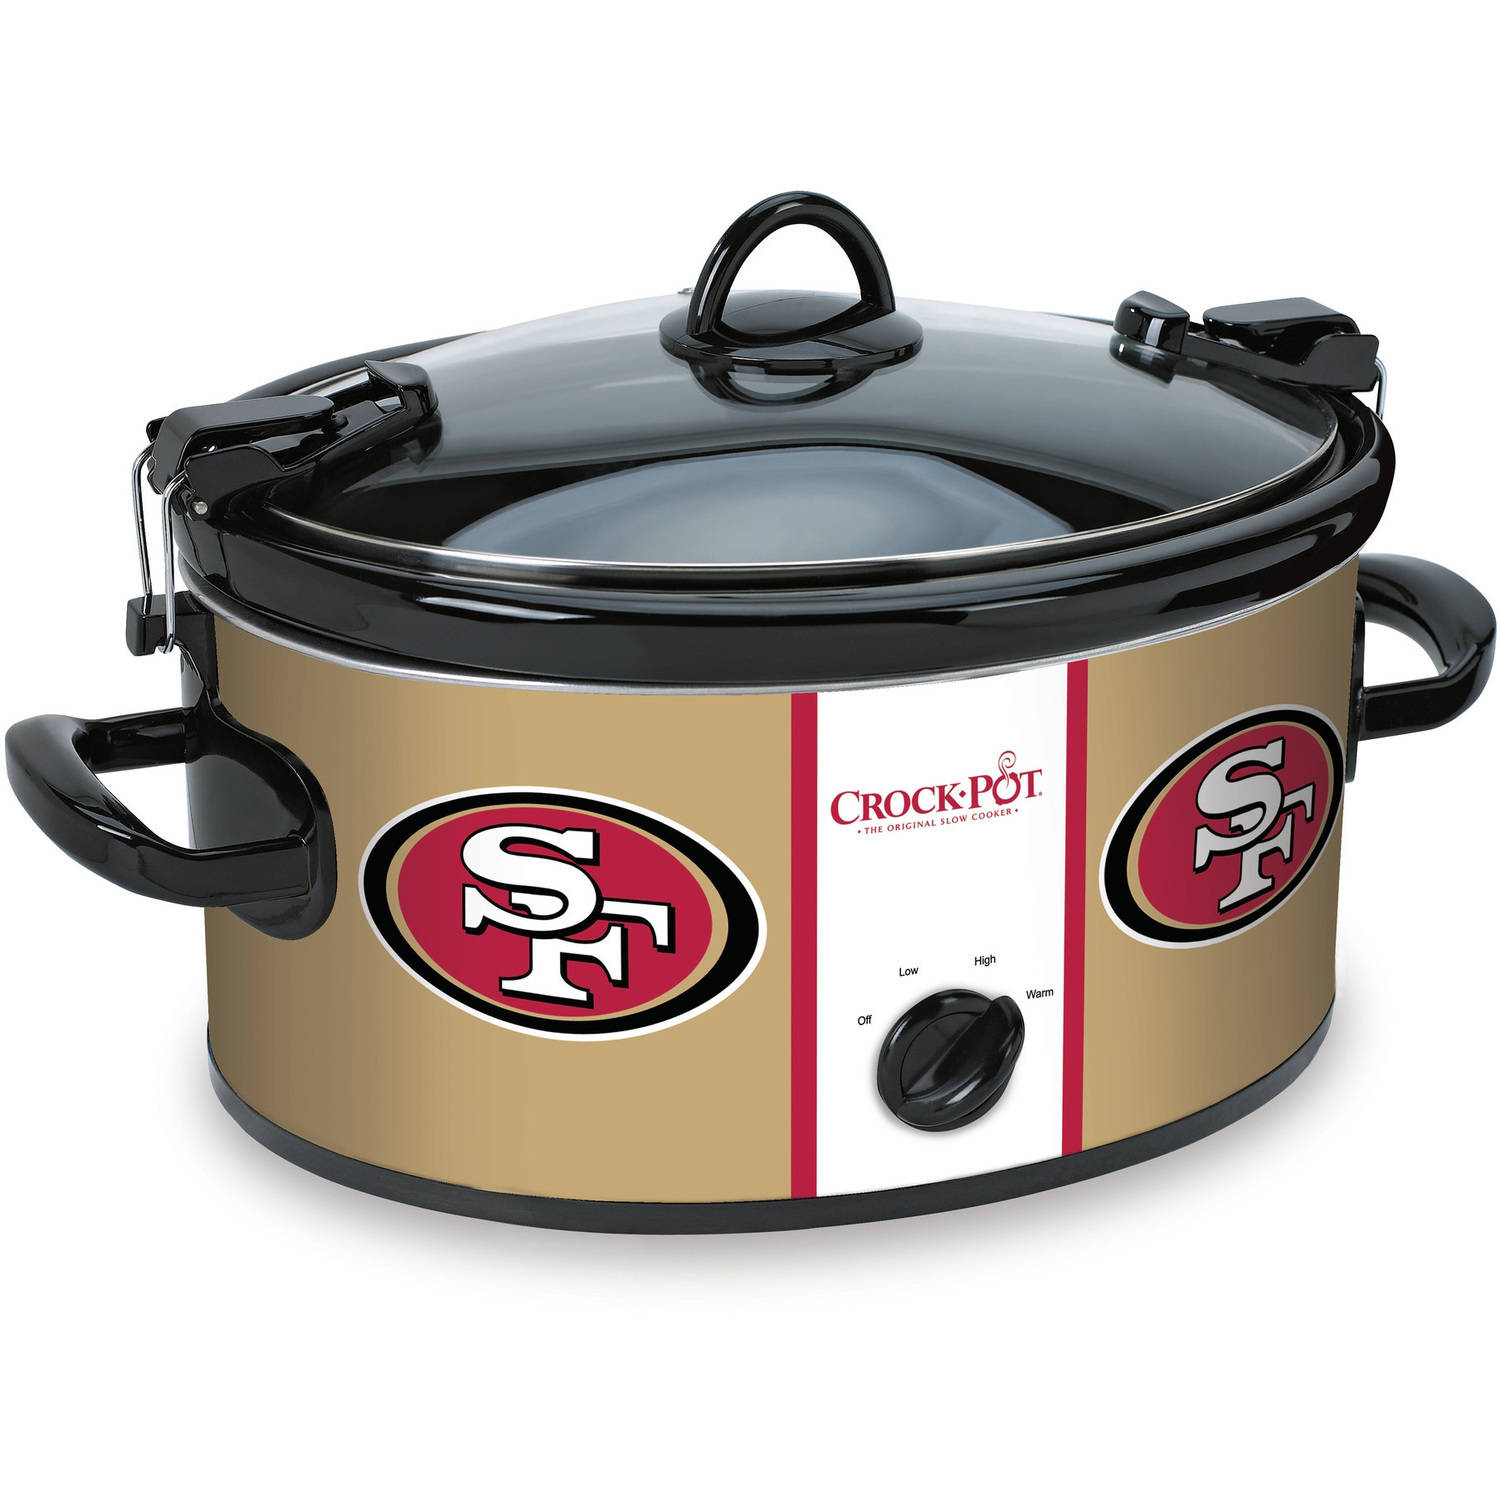 Crock-Pot NFL 6-Quart Slow Cooker, San Francisco 49ers